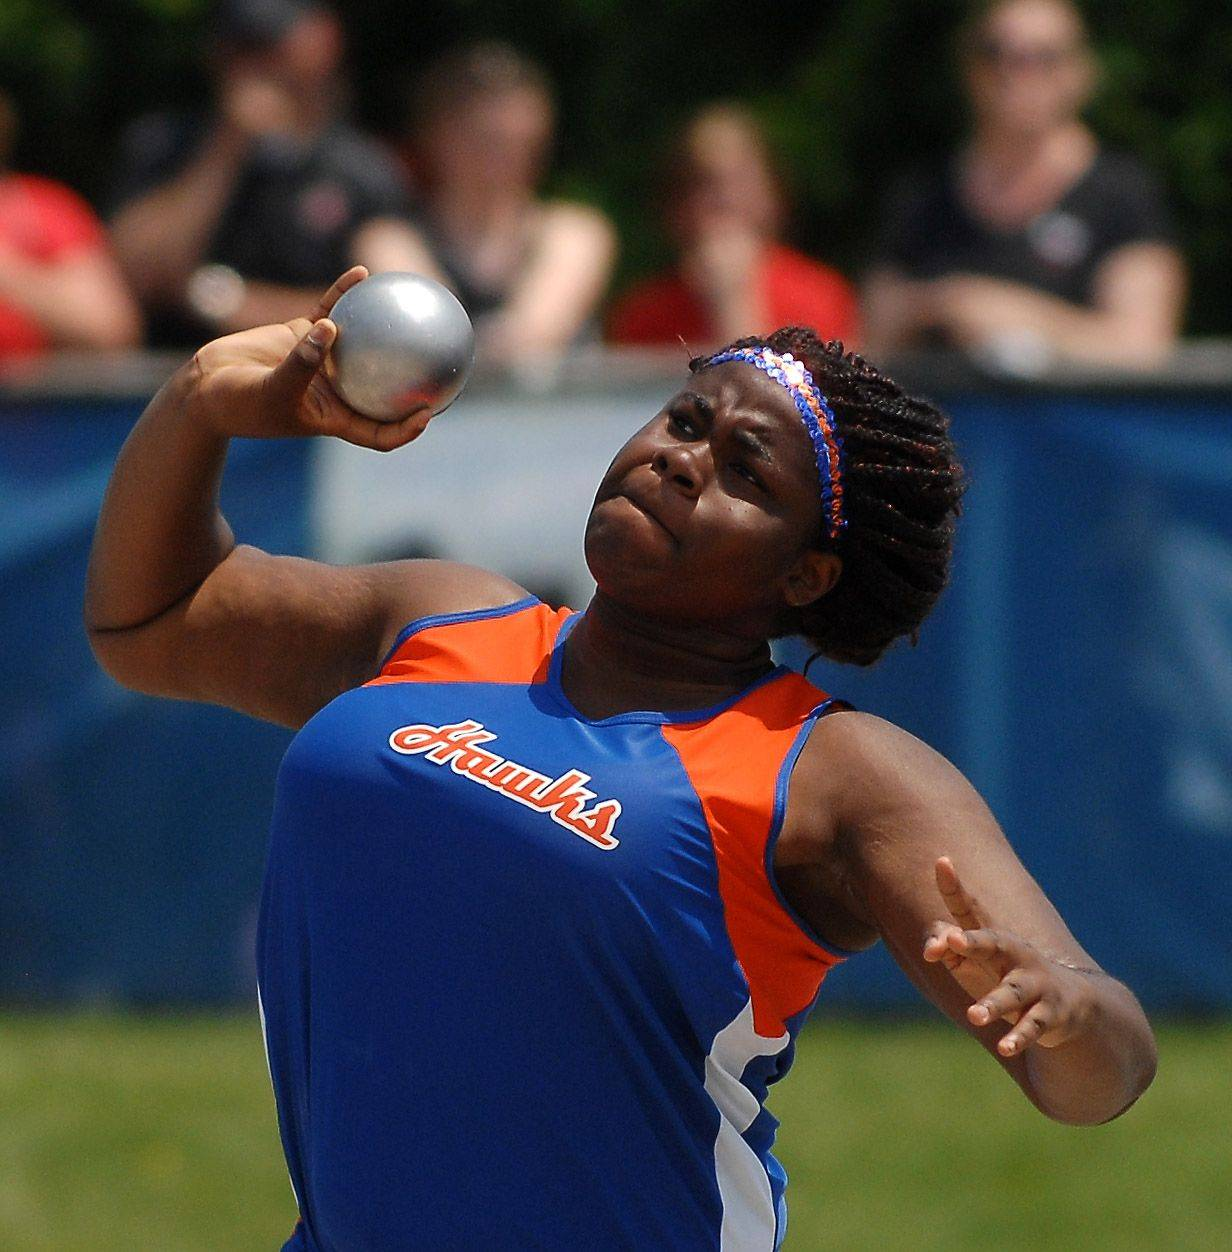 Hoffman Estates High School's Banke Oginni puts the shot during Friday's preliminaries.